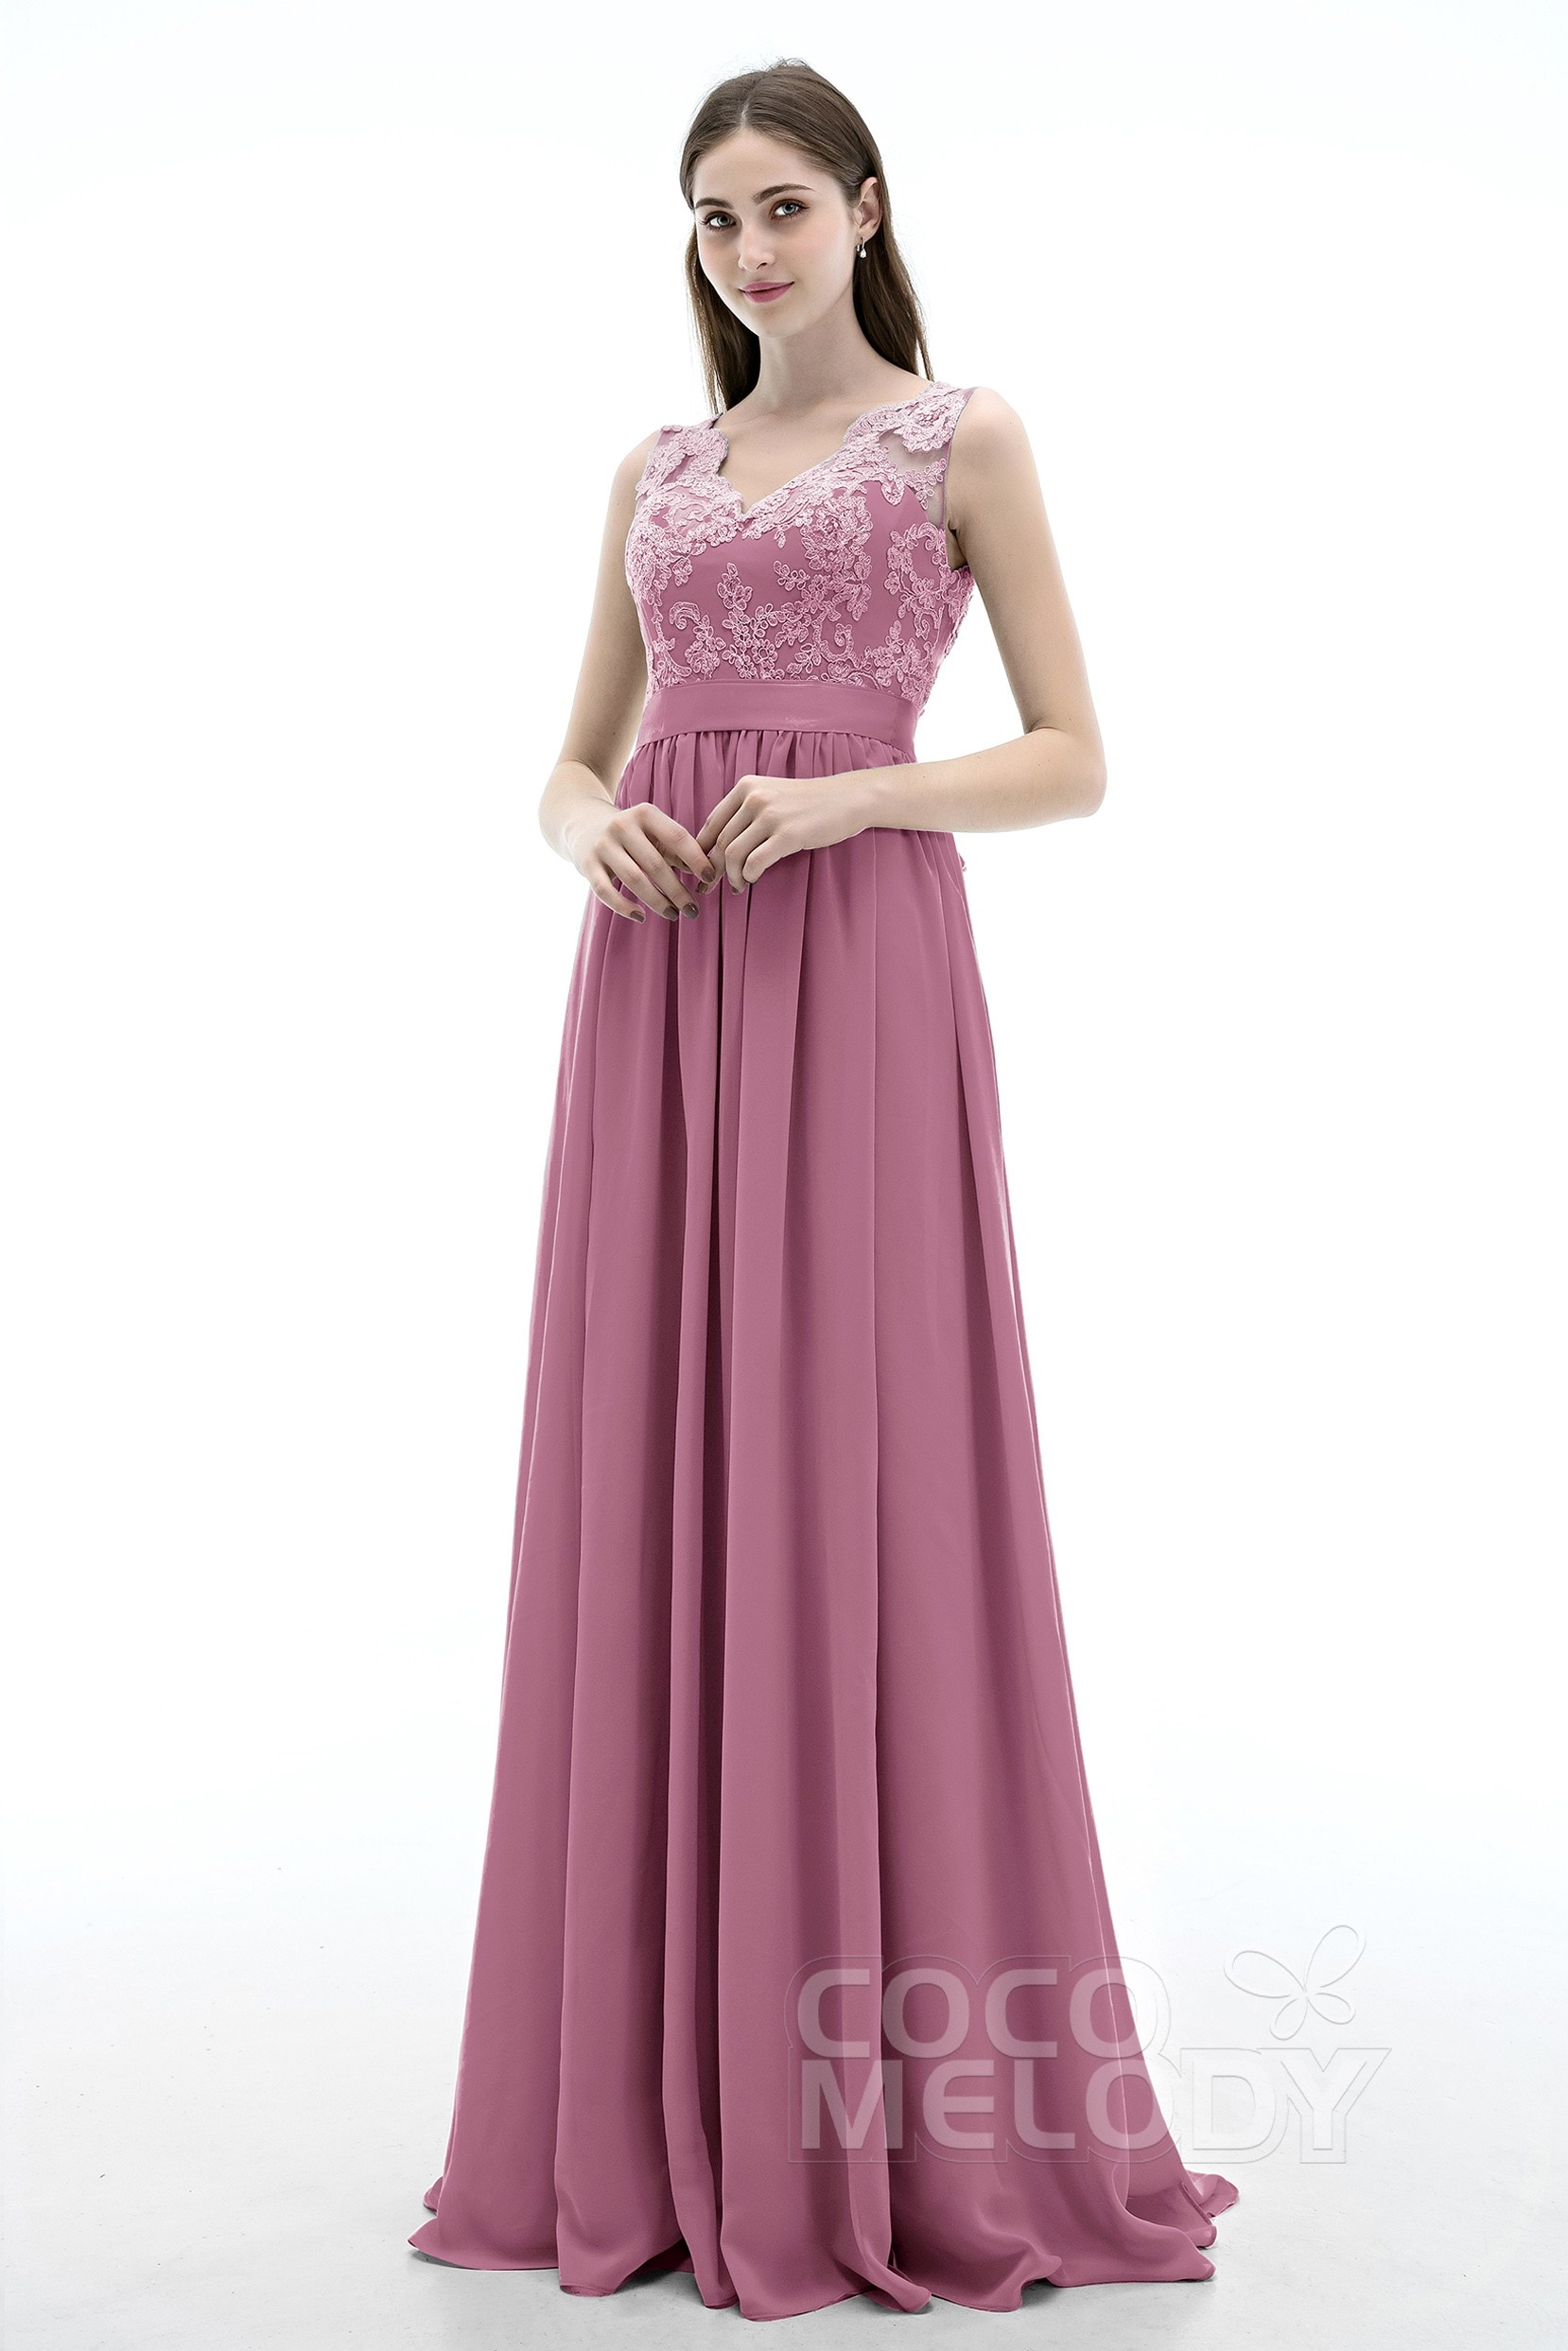 Chiffon long bridesmaid dresses cheap long bridesmaid dresses sheath column v neck natural sweep brush train chiffon sleeveless open back bridesmaid ombrellifo Choice Image